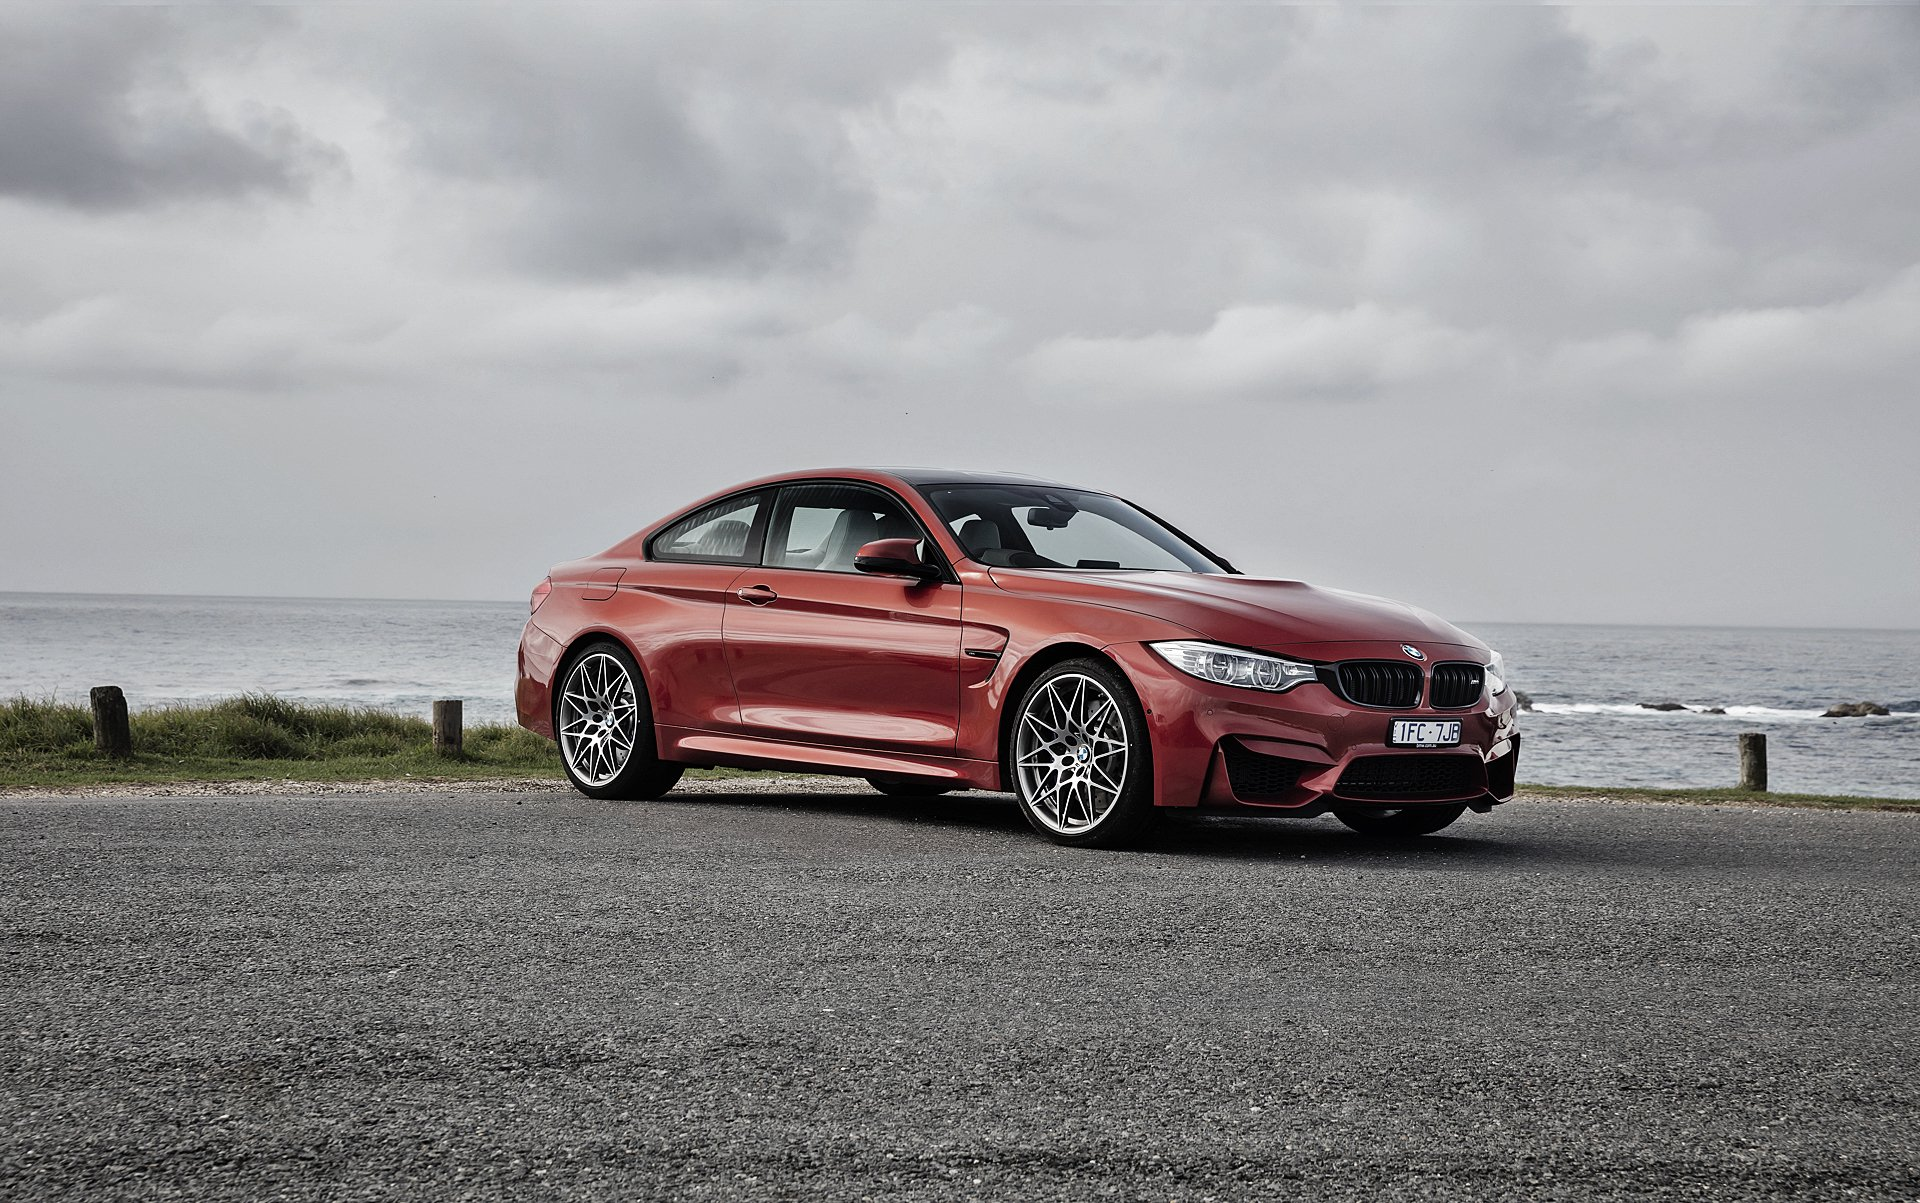 Vehicles - BMW M4  BMW Red Car Grand Tourer Car Vehicle Wallpaper